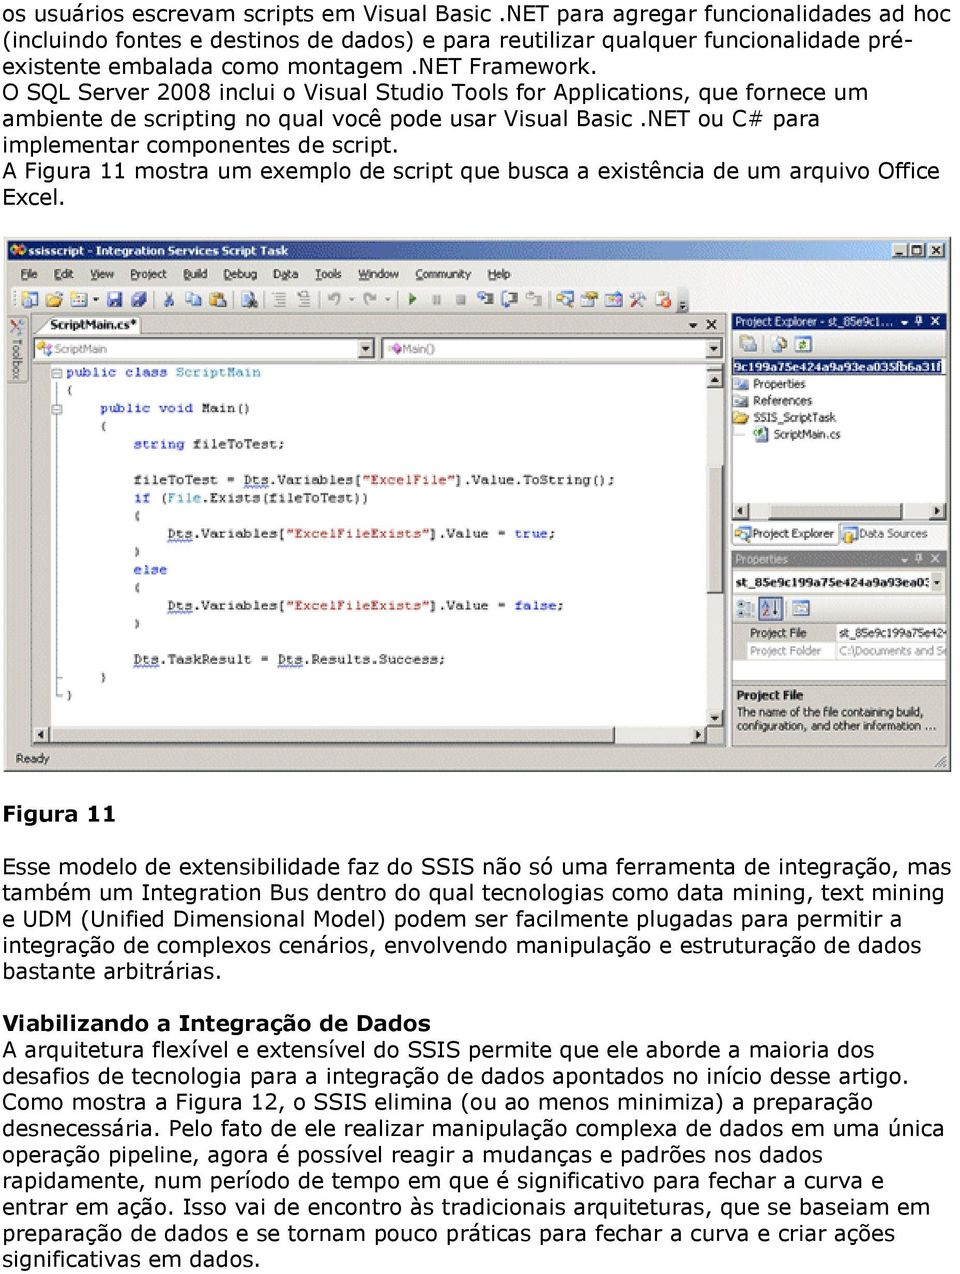 O SQL Server 2008 inclui o Visual Studio Tools for Applications, que fornece um ambiente de scripting no qual você pode usar Visual Basic.NET ou C# para implementar componentes de script.